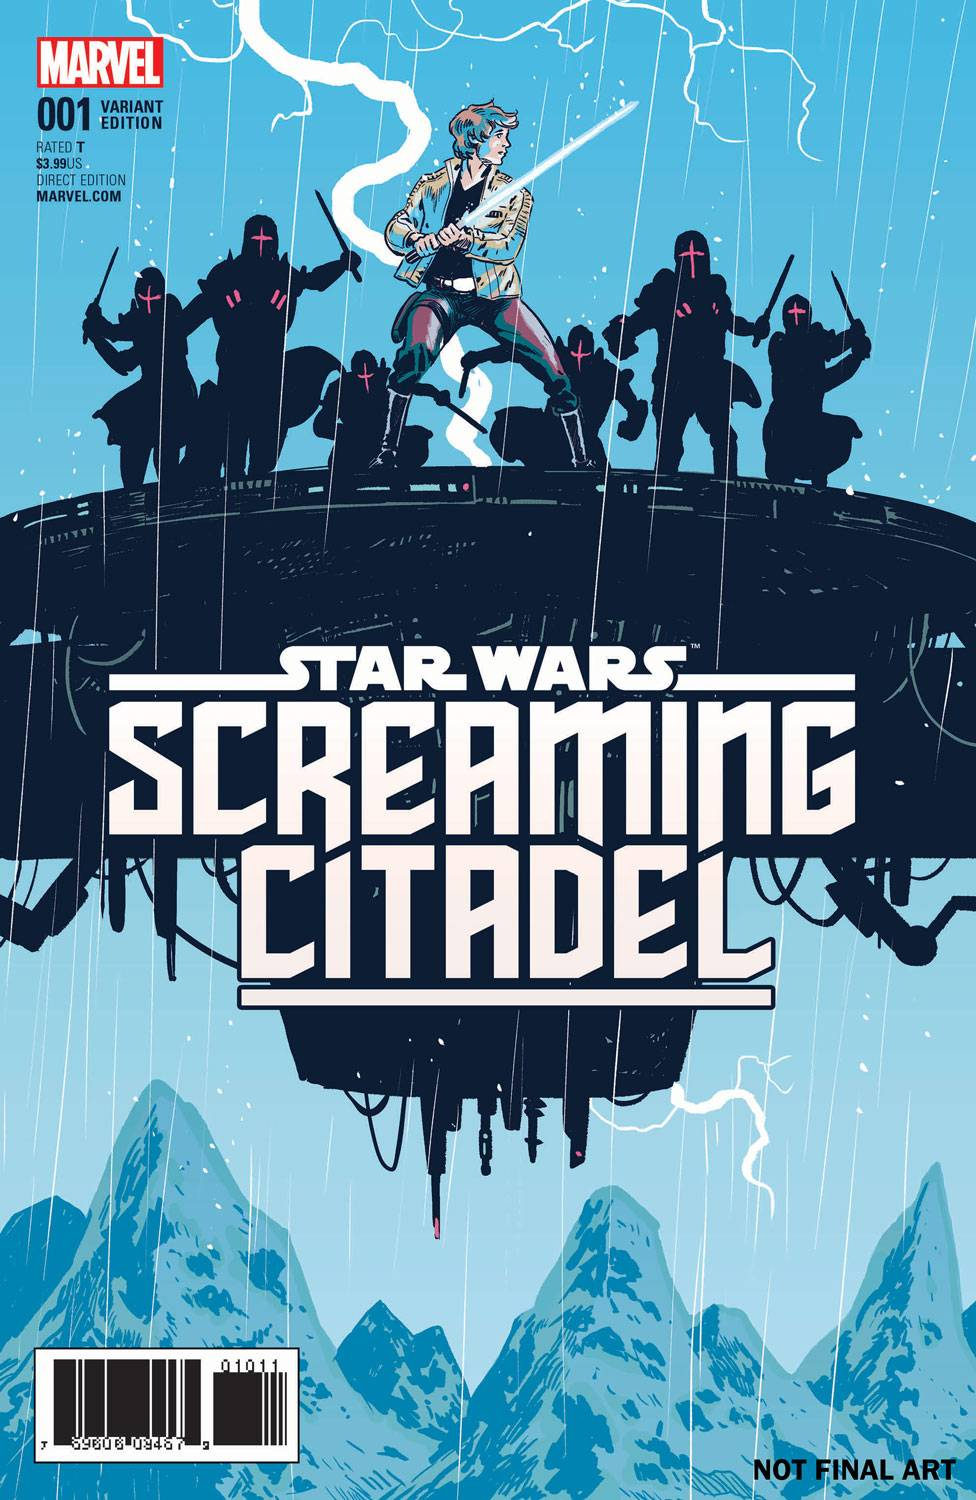 STAR WARS SCREAMING CITADEL 1 C VAR.jpg